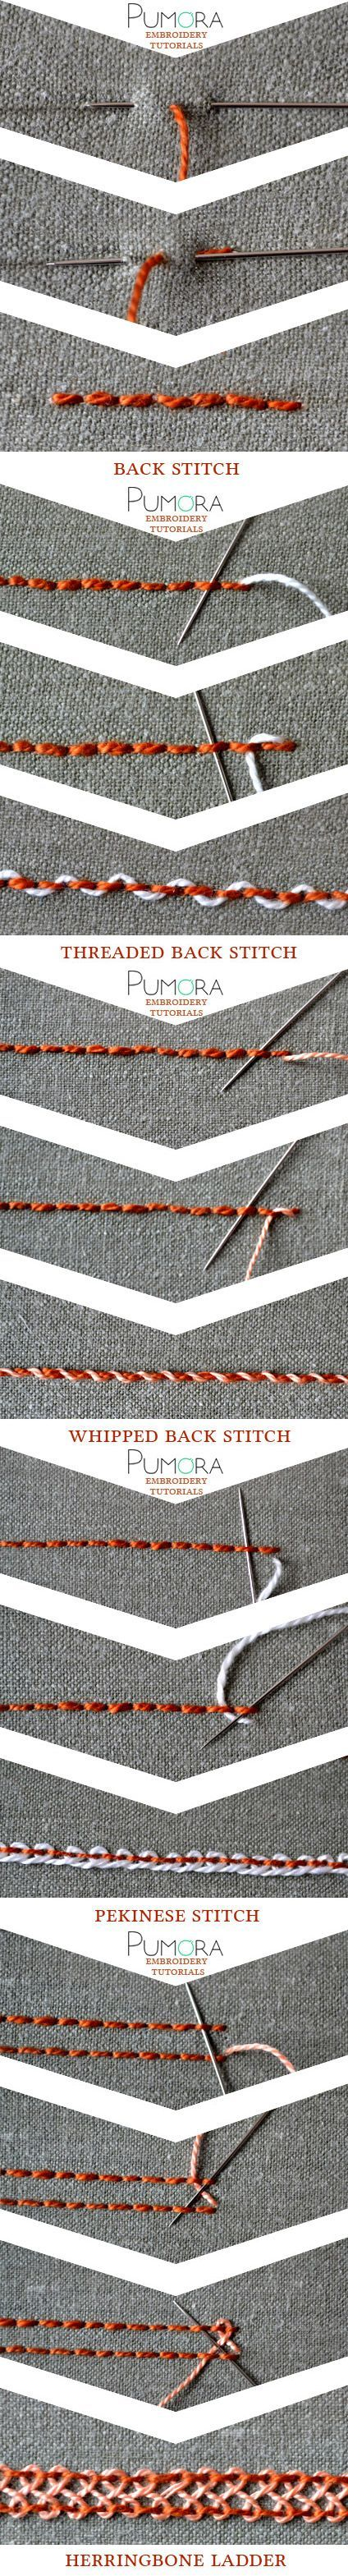 embroidery tutorials: backstitch with variations bordado, ricamo, broderie, sticken